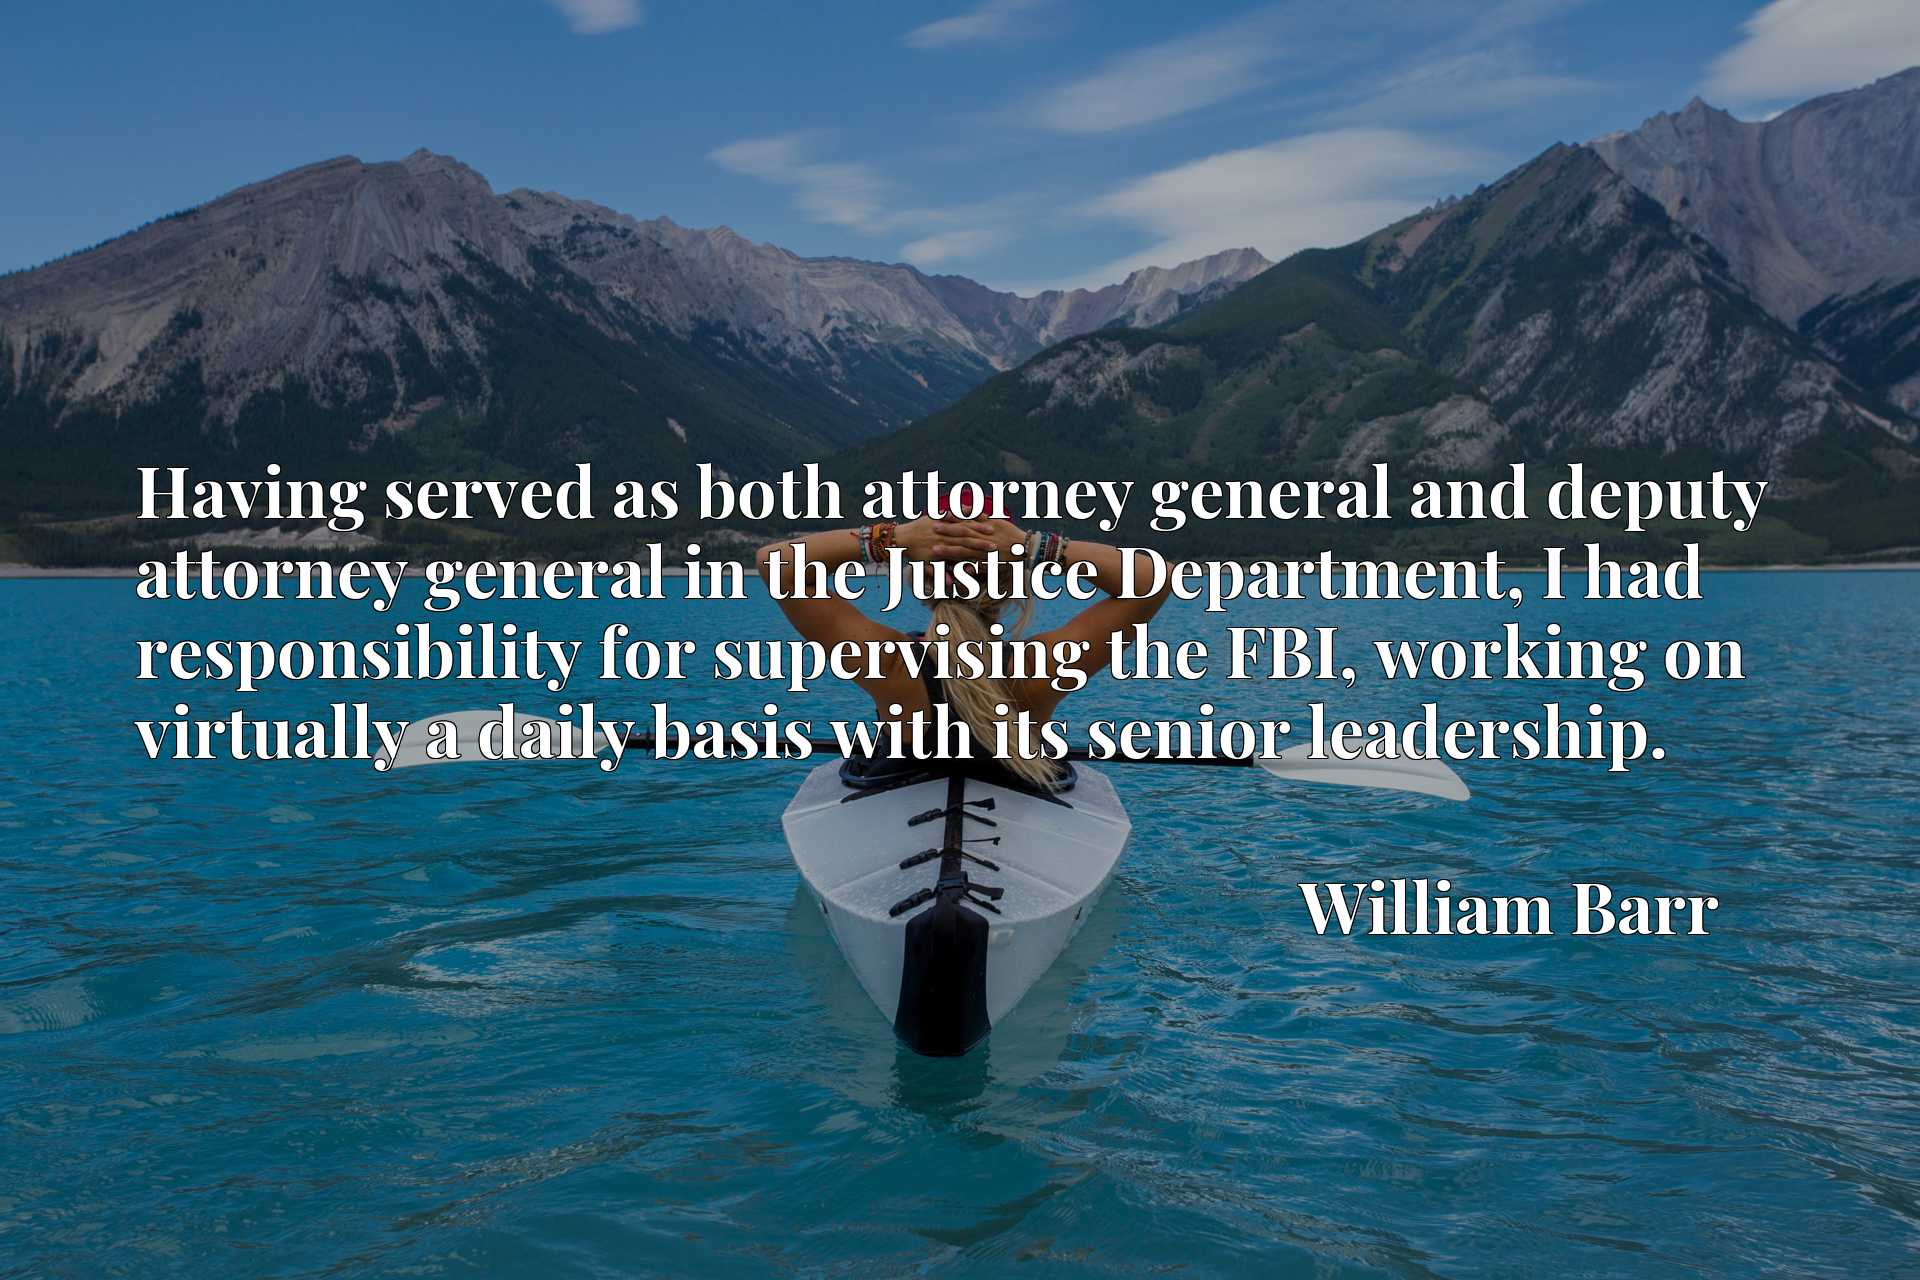 Having served as both attorney general and deputy attorney general in the Justice Department, I had responsibility for supervising the FBI, working on virtually a daily basis with its senior leadership.